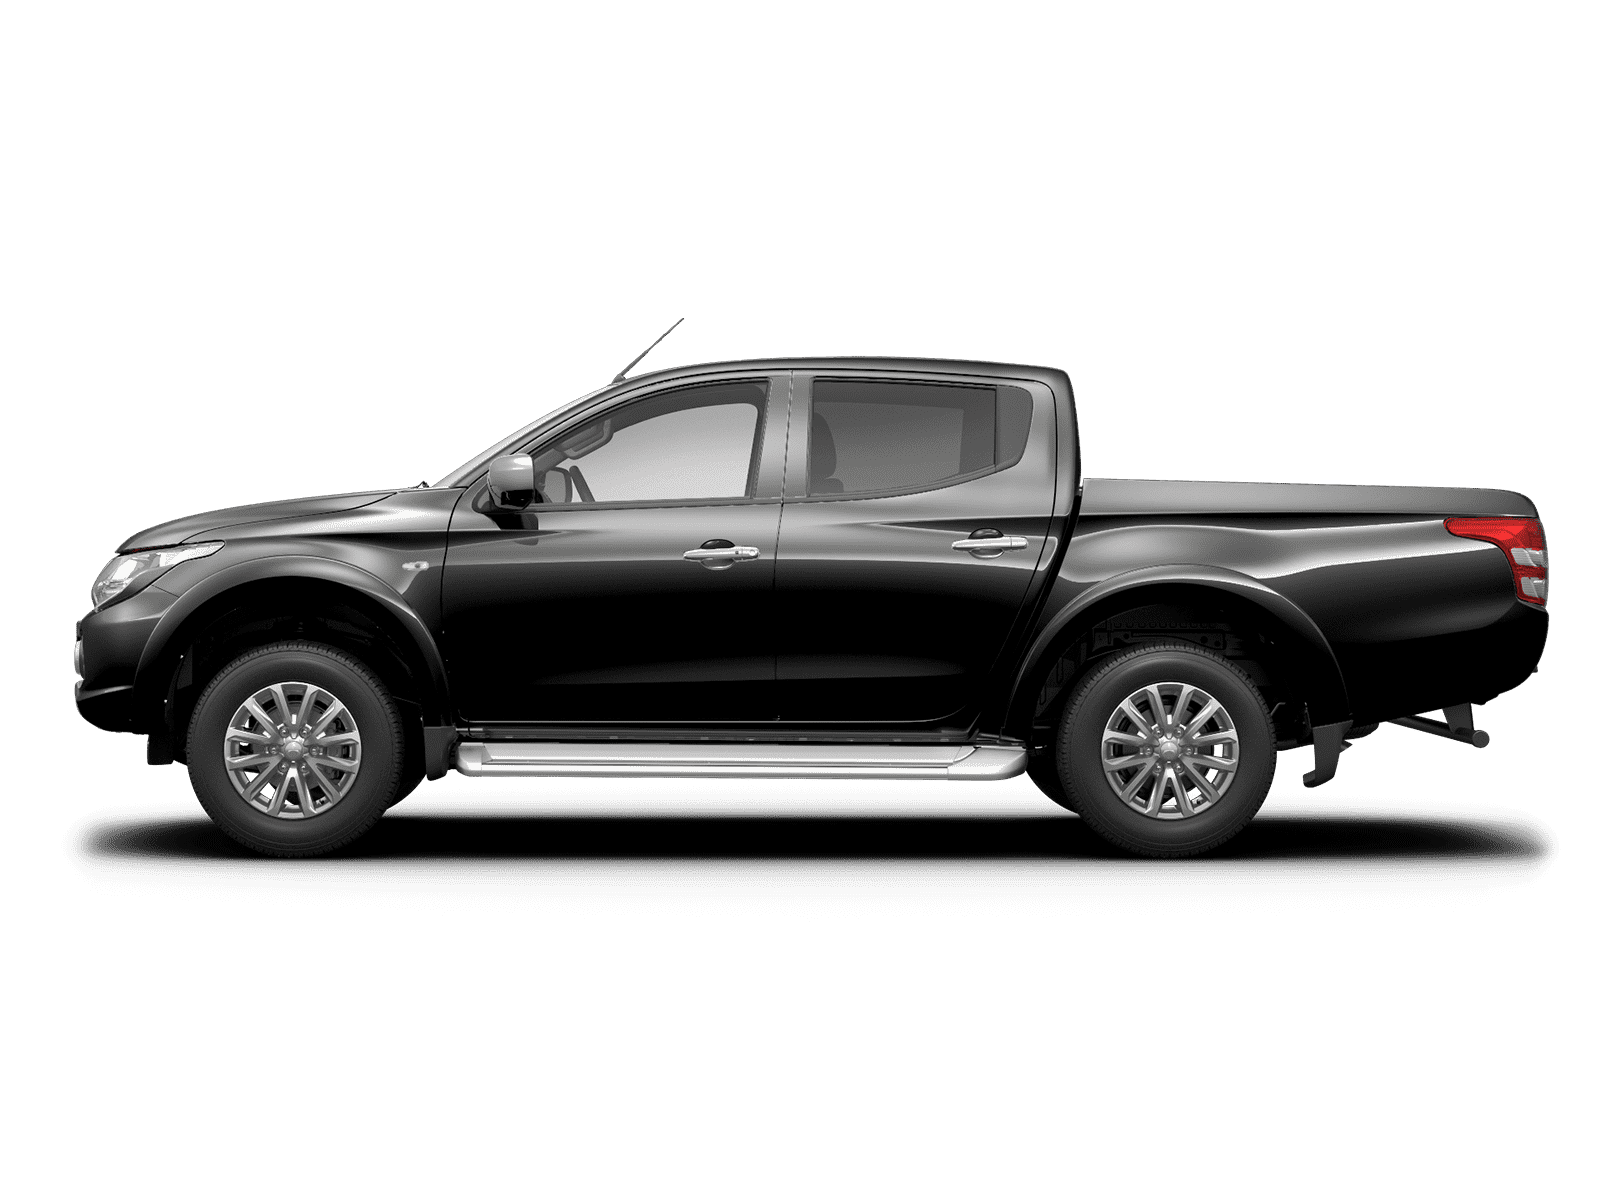 Mitsubishi L200 Double Cab Range Diamond Black